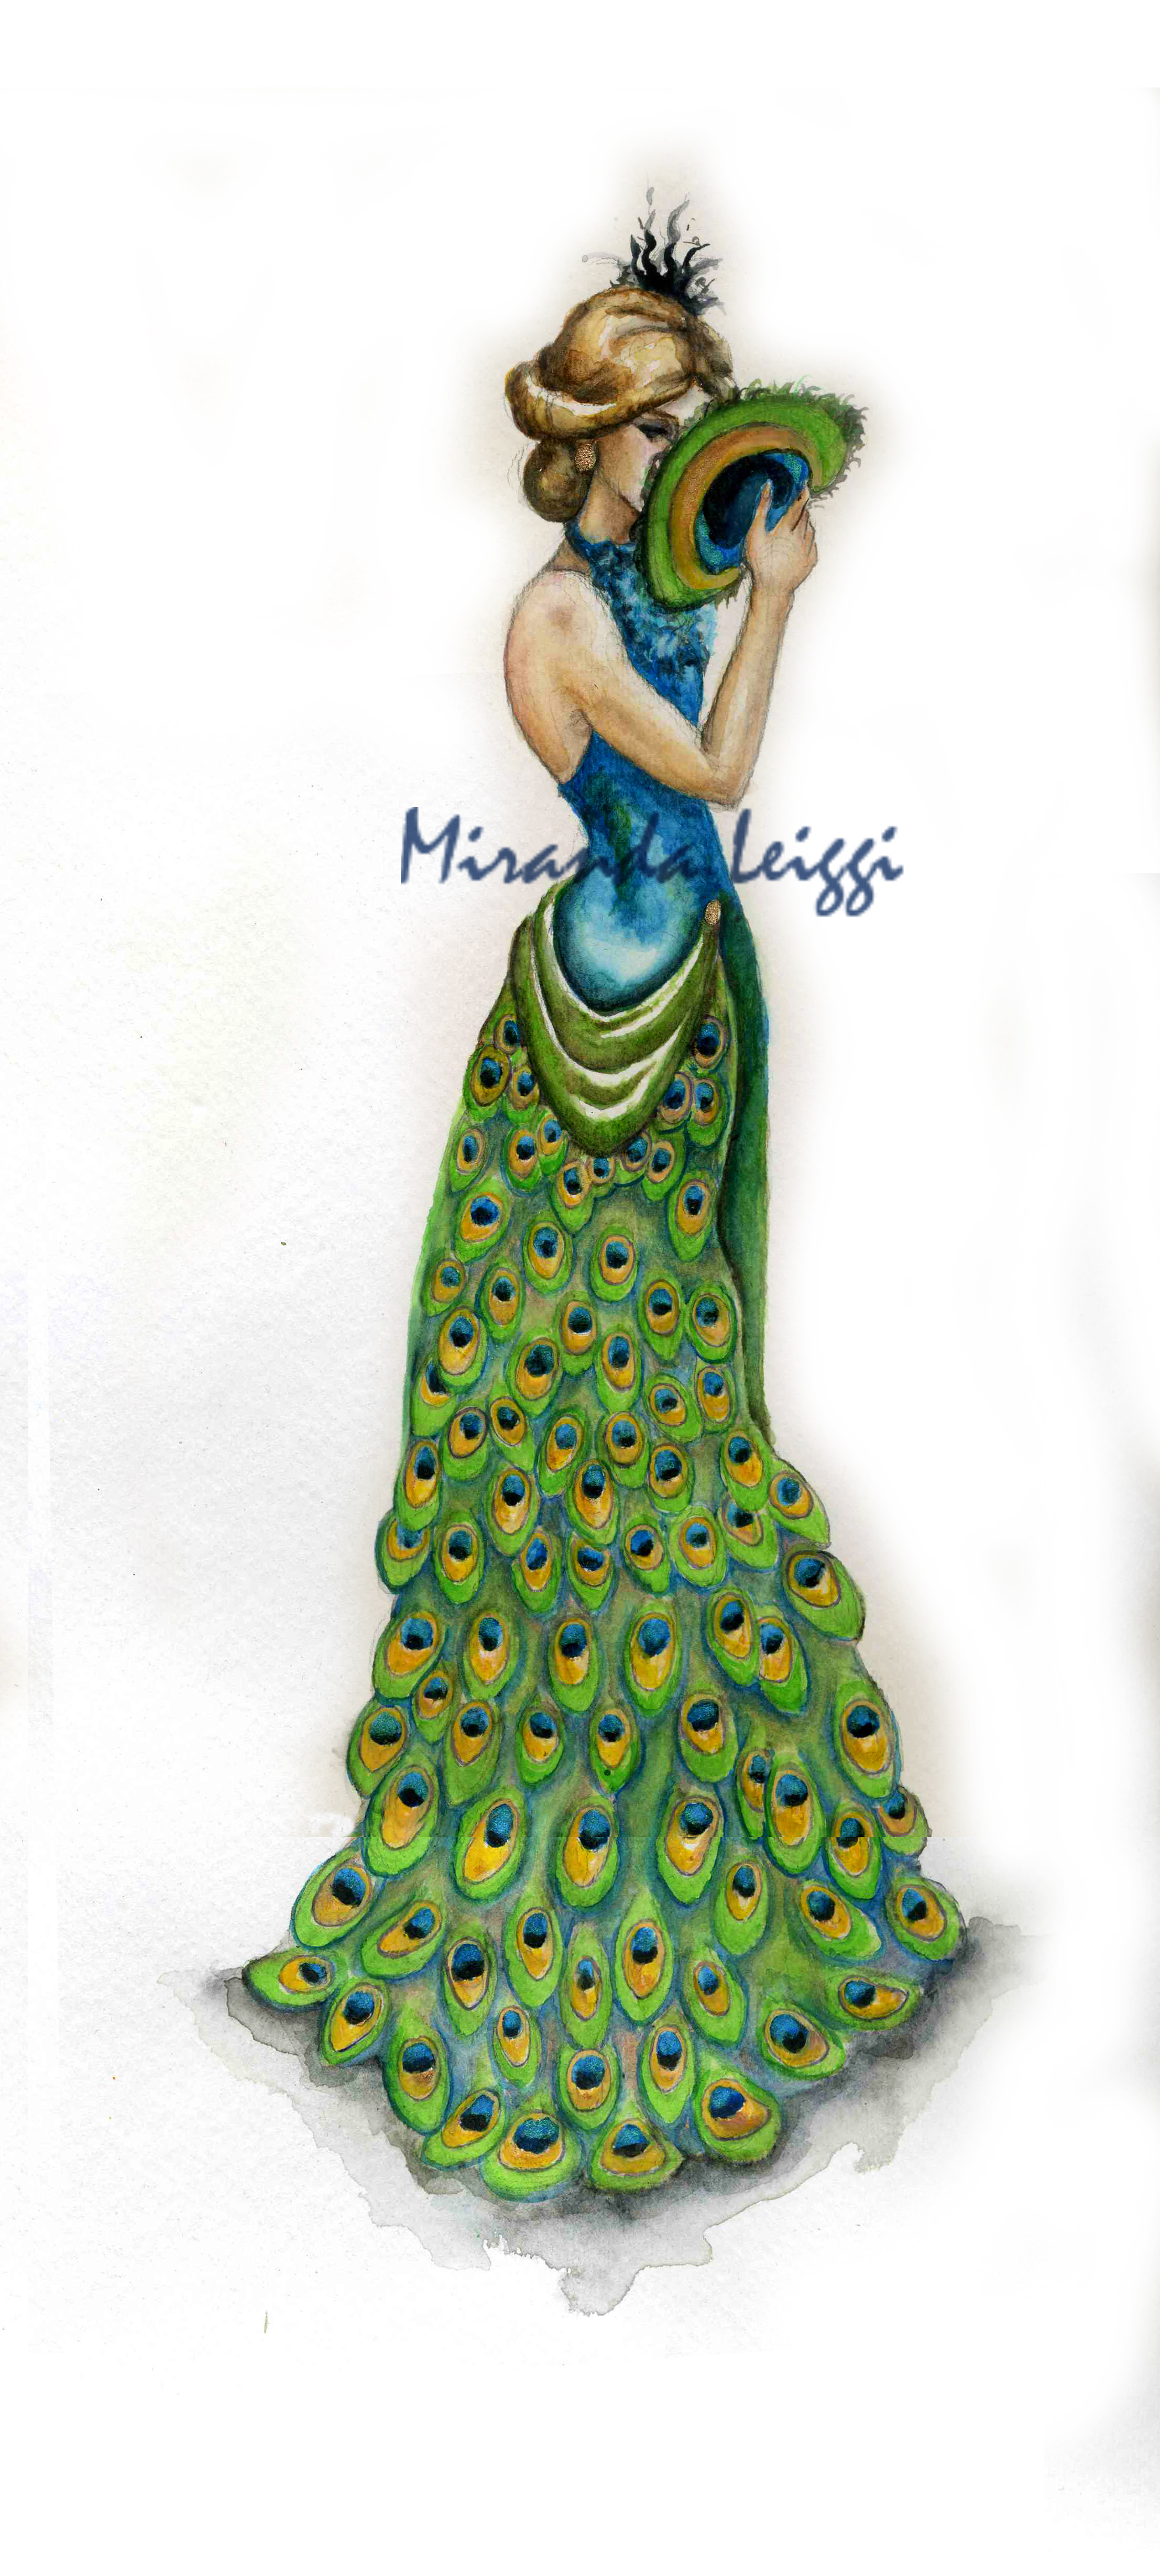 costume rendering, watercolor, peacock dress, women's fashion, evening wear, peacock feathers